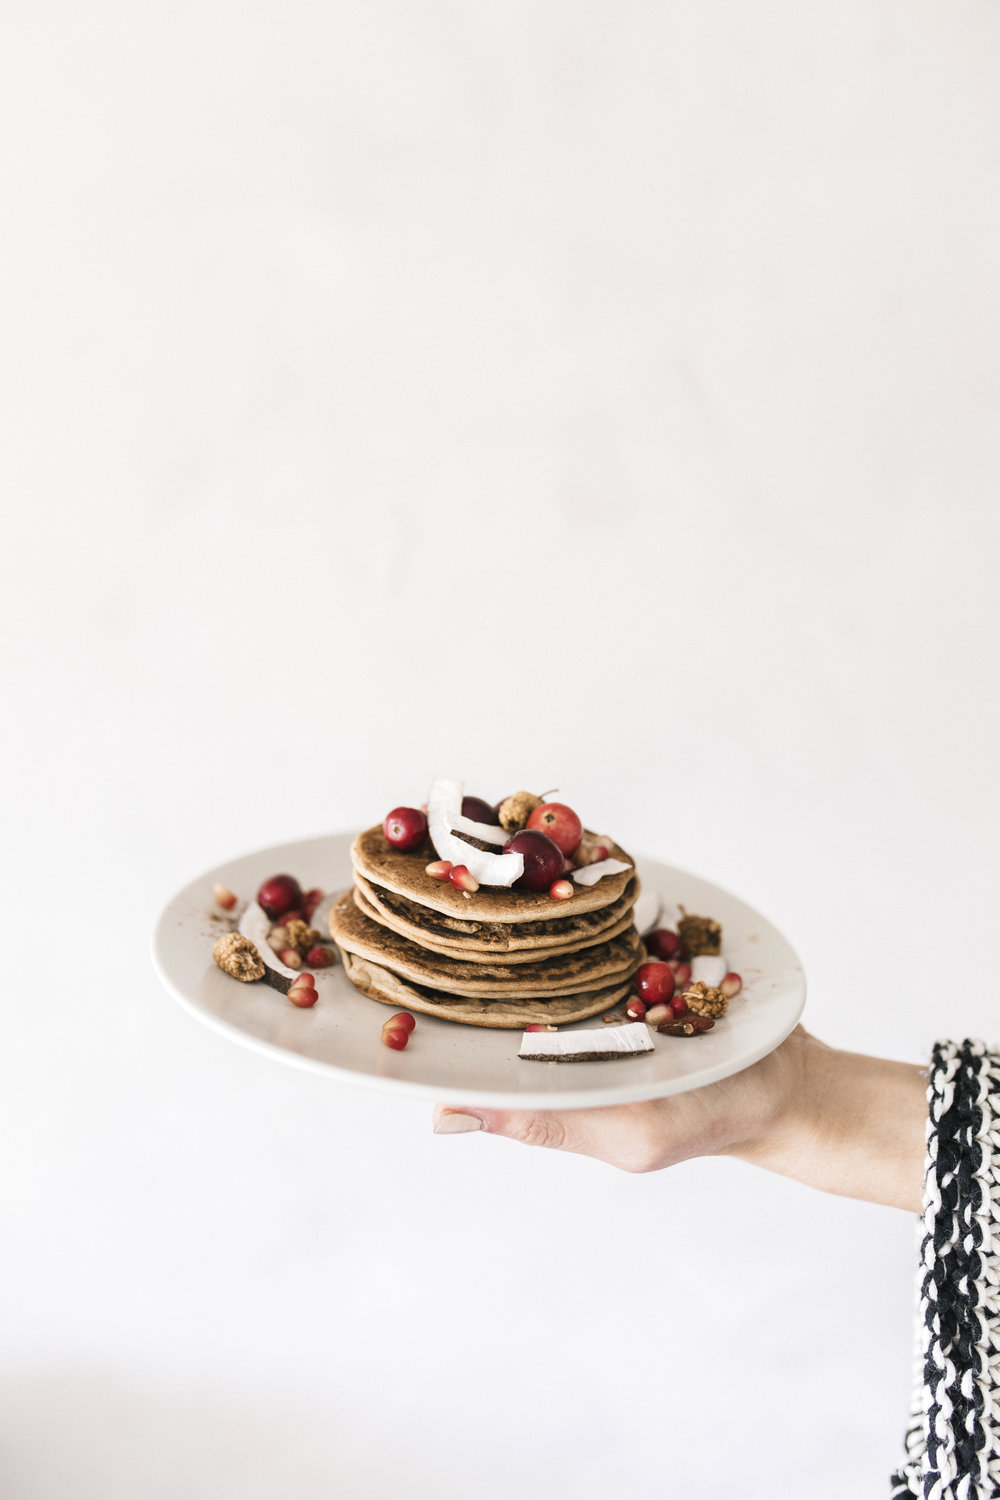 Cranberry pancakes are a healthy way to bring Christmas into your home and morning routine